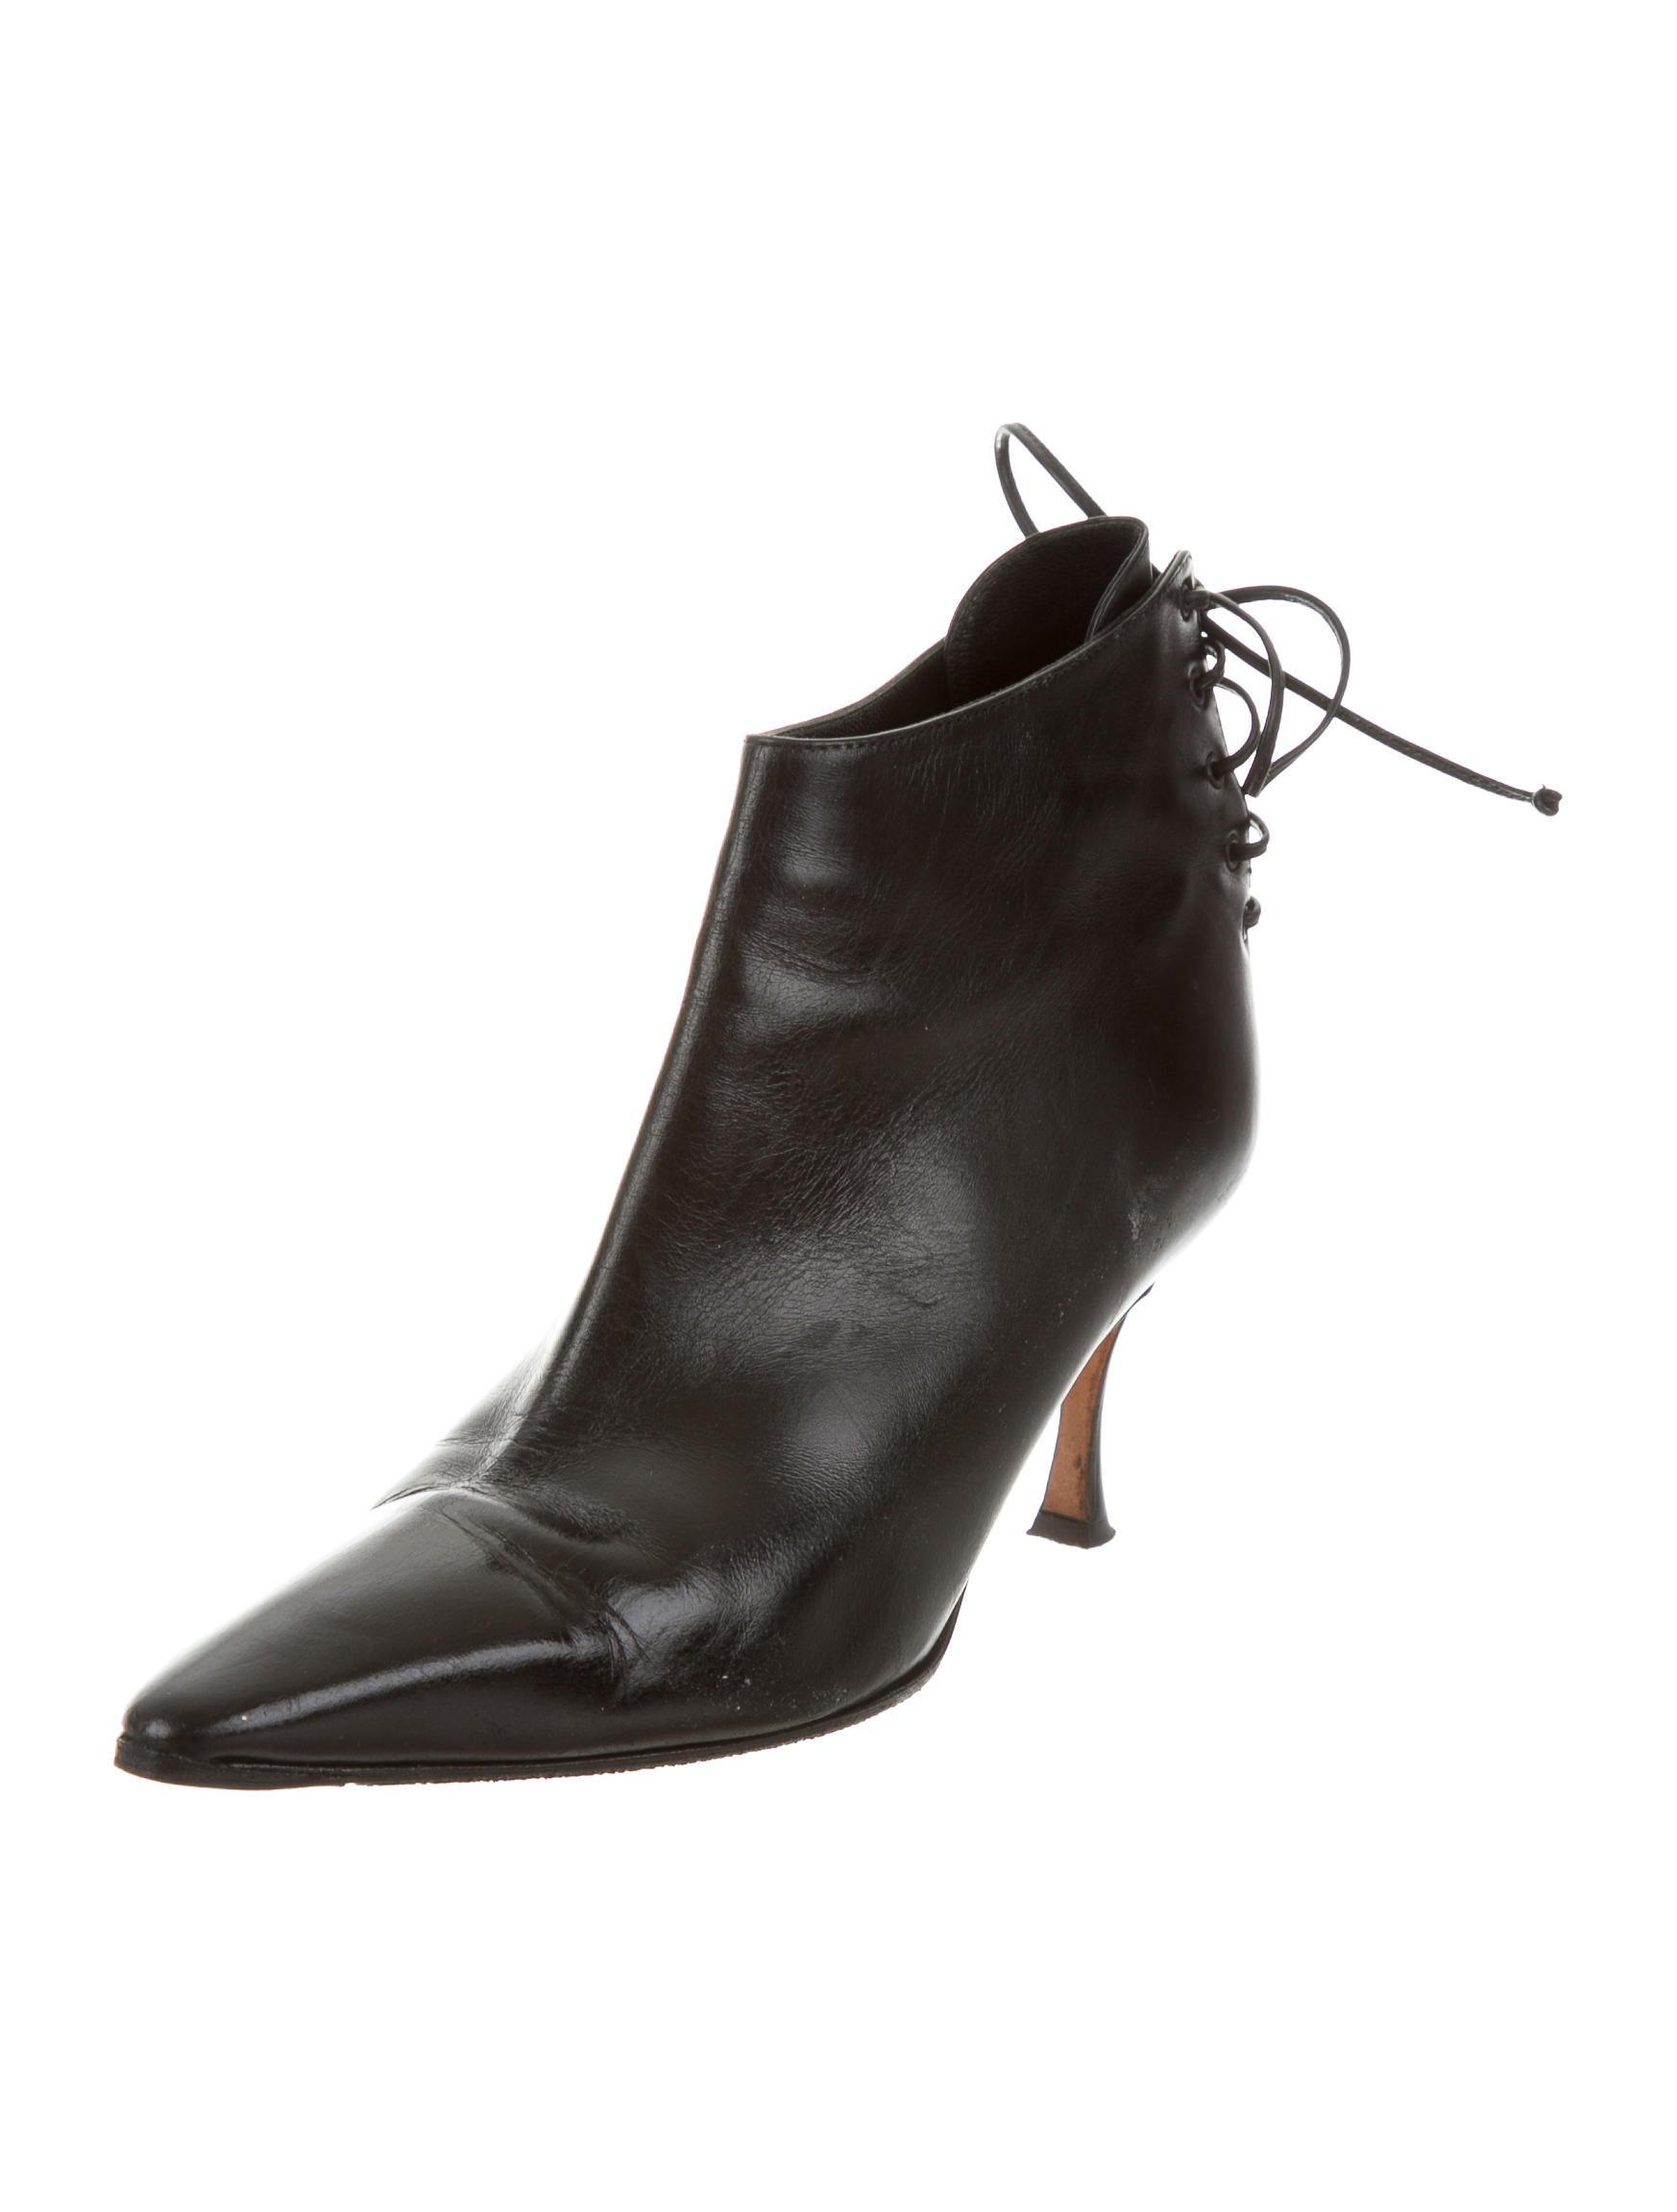 Manolo Blahnik Pointed-Toe Ankle Boots - Shoes - MOO55248 ...